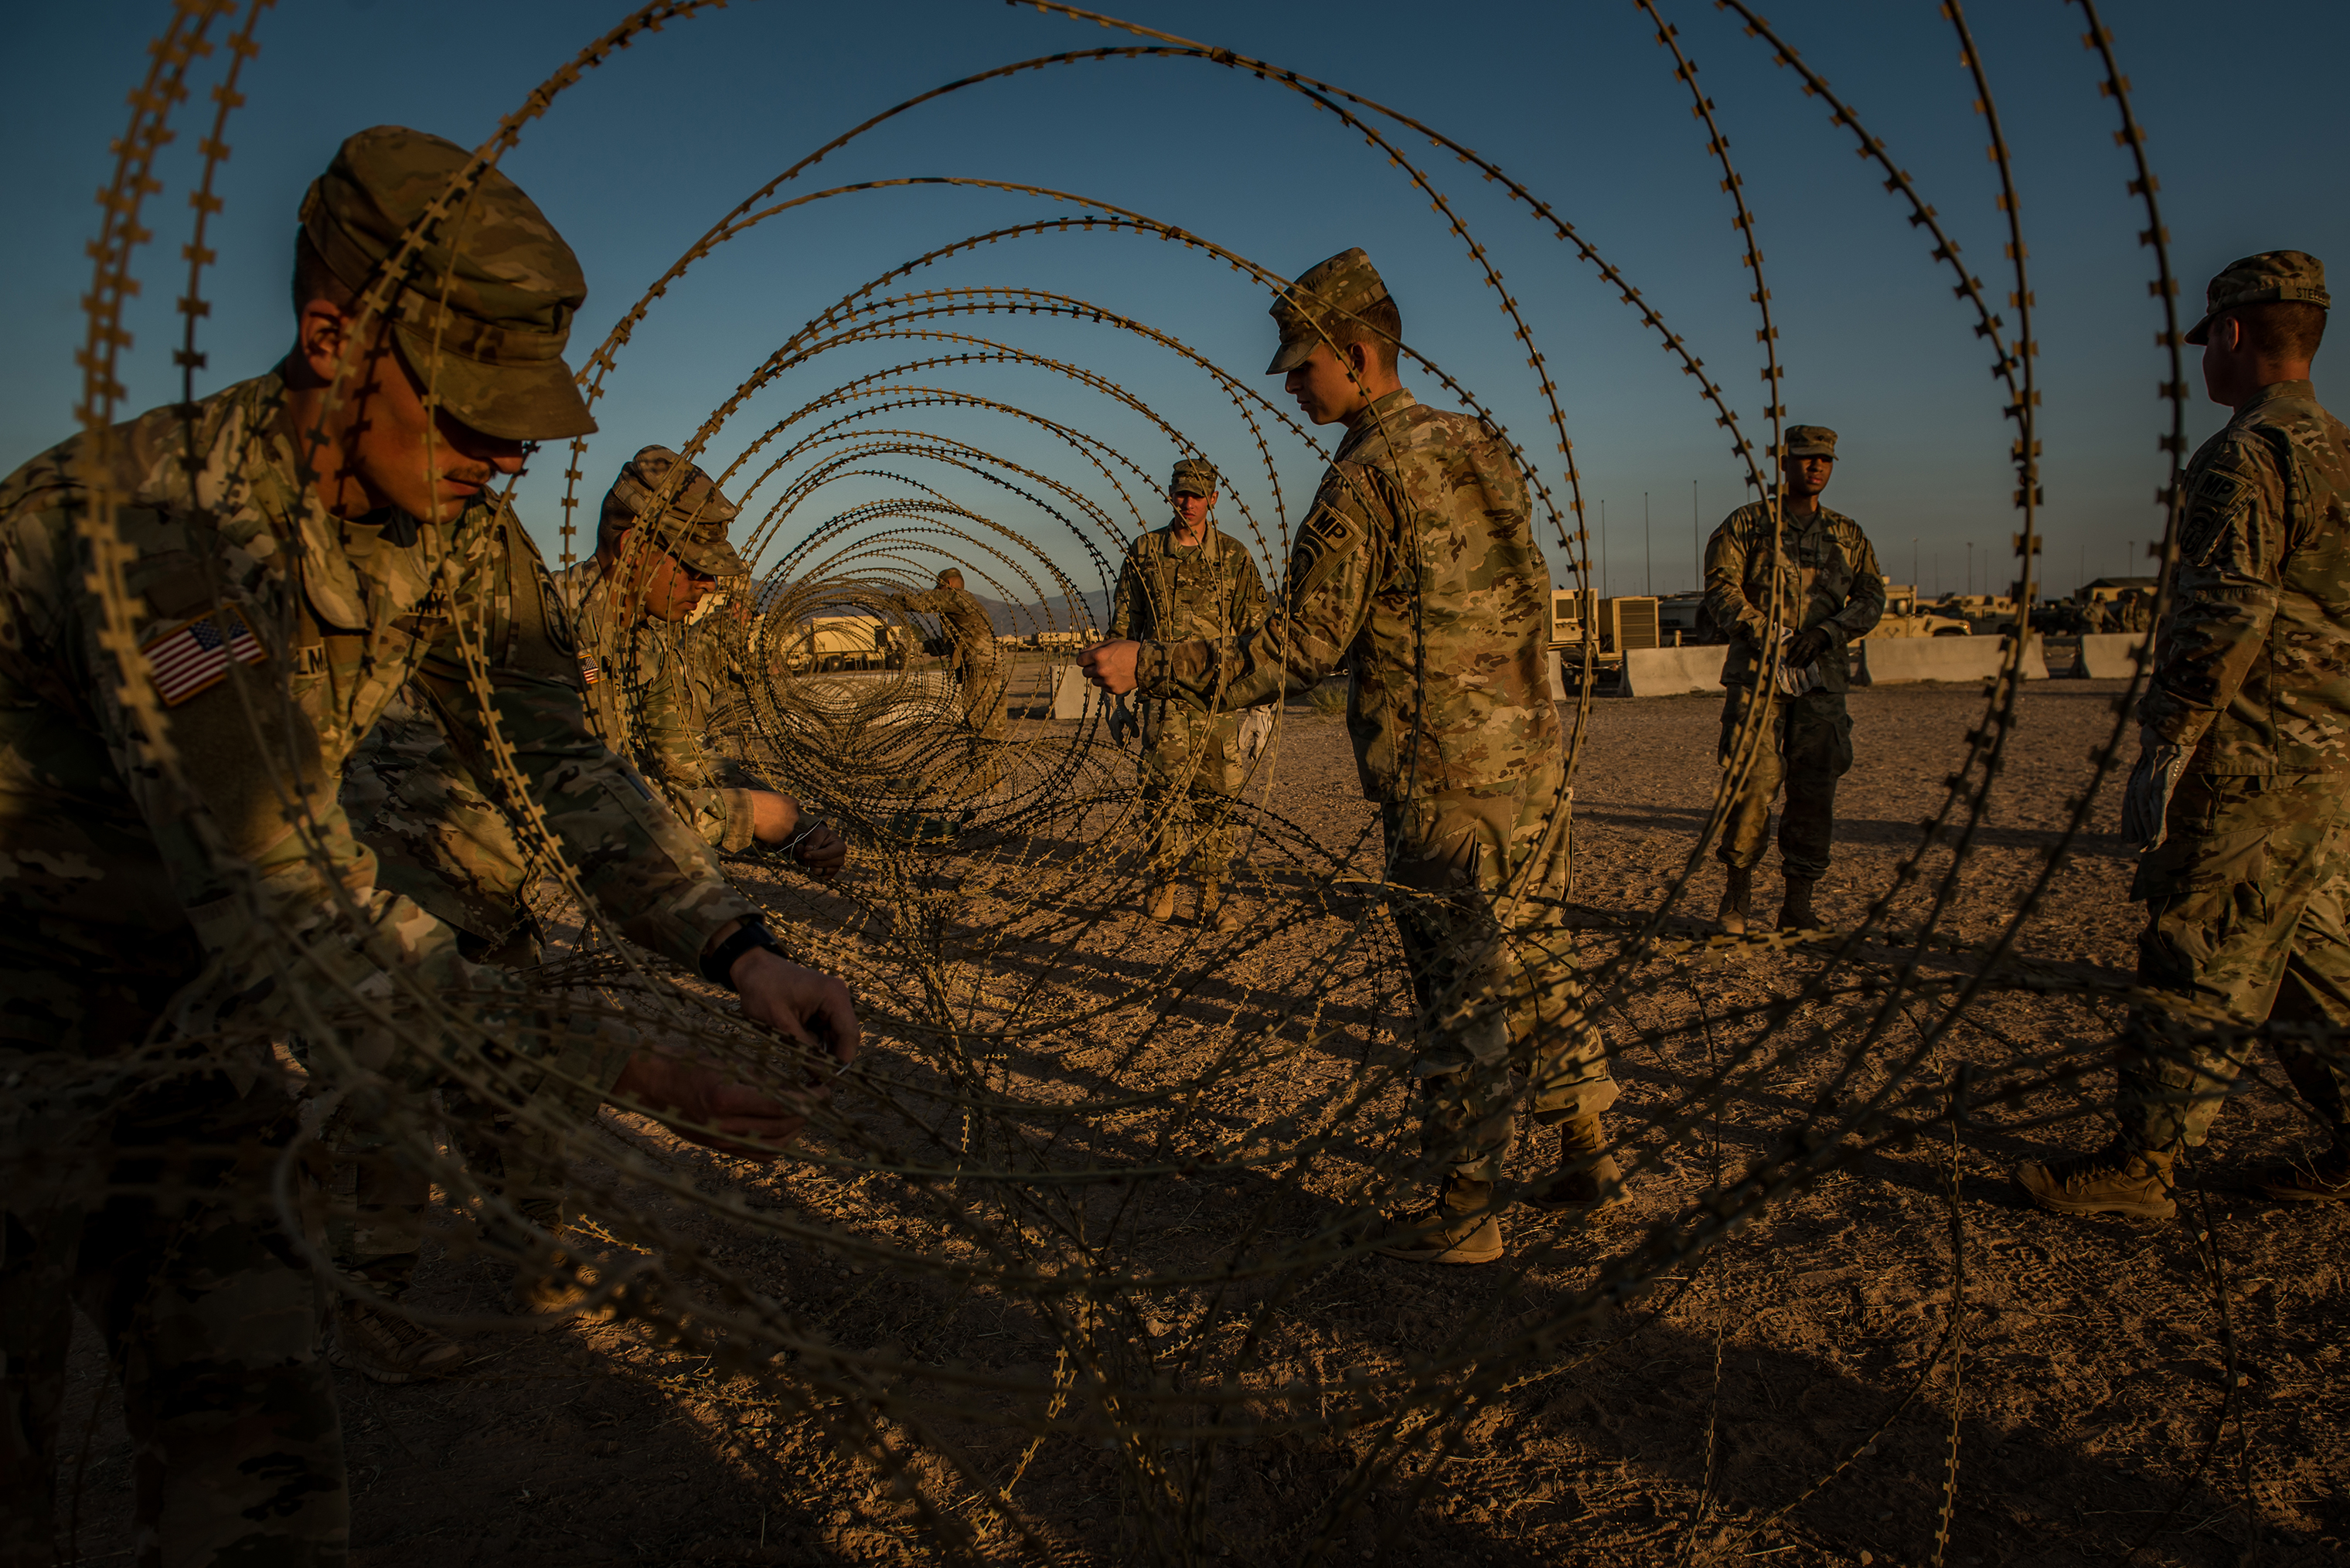 Razor wire is used to help protect a shipping container holding guns and sensitive material.